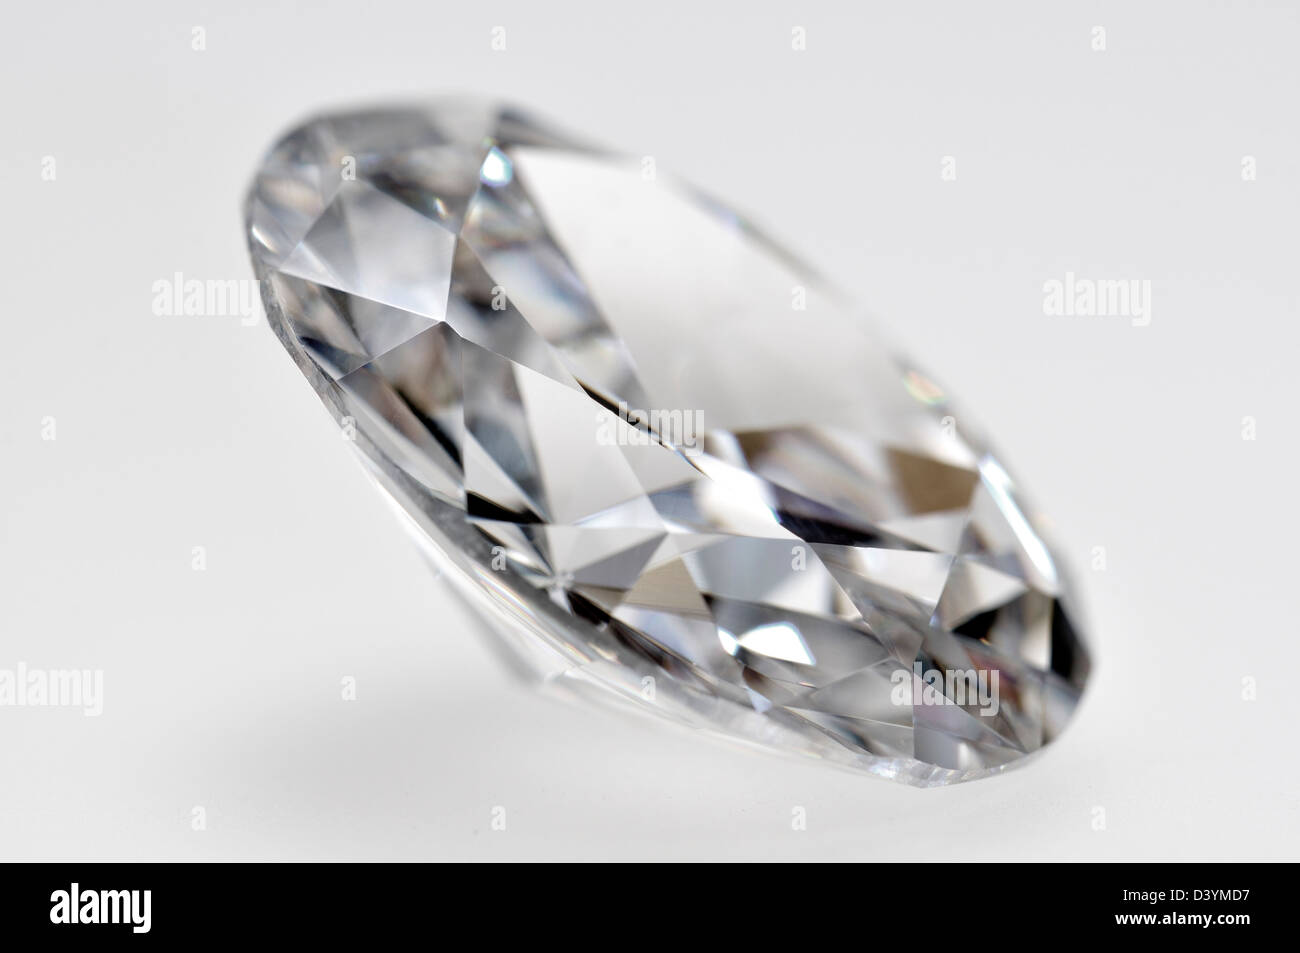 Oval-cut Diamond (synthetic - cubic zirconia) - Stock Image